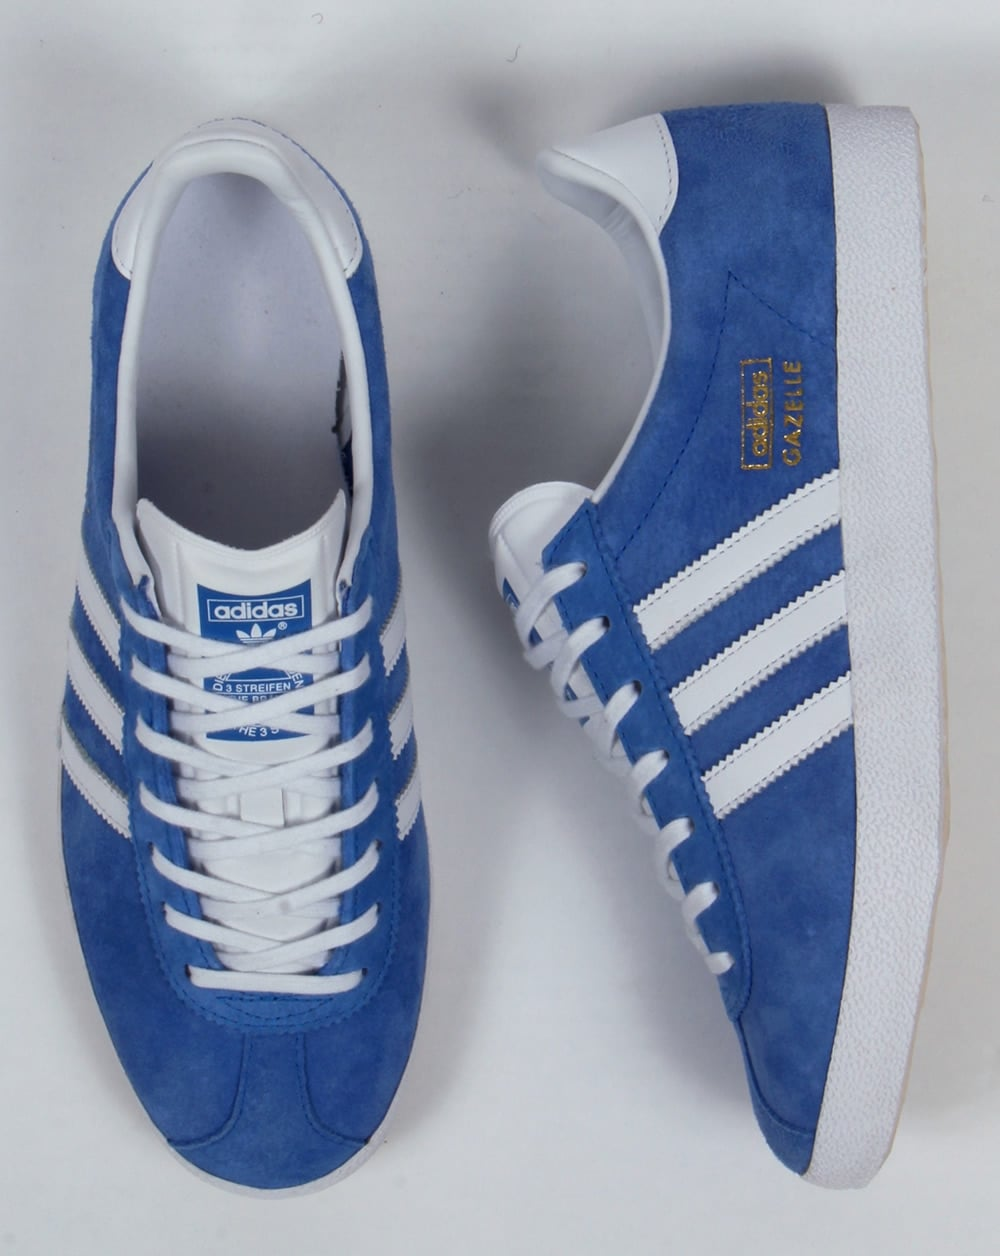 adidas gazelle blue kids most popular adidas shoes 2017 2018